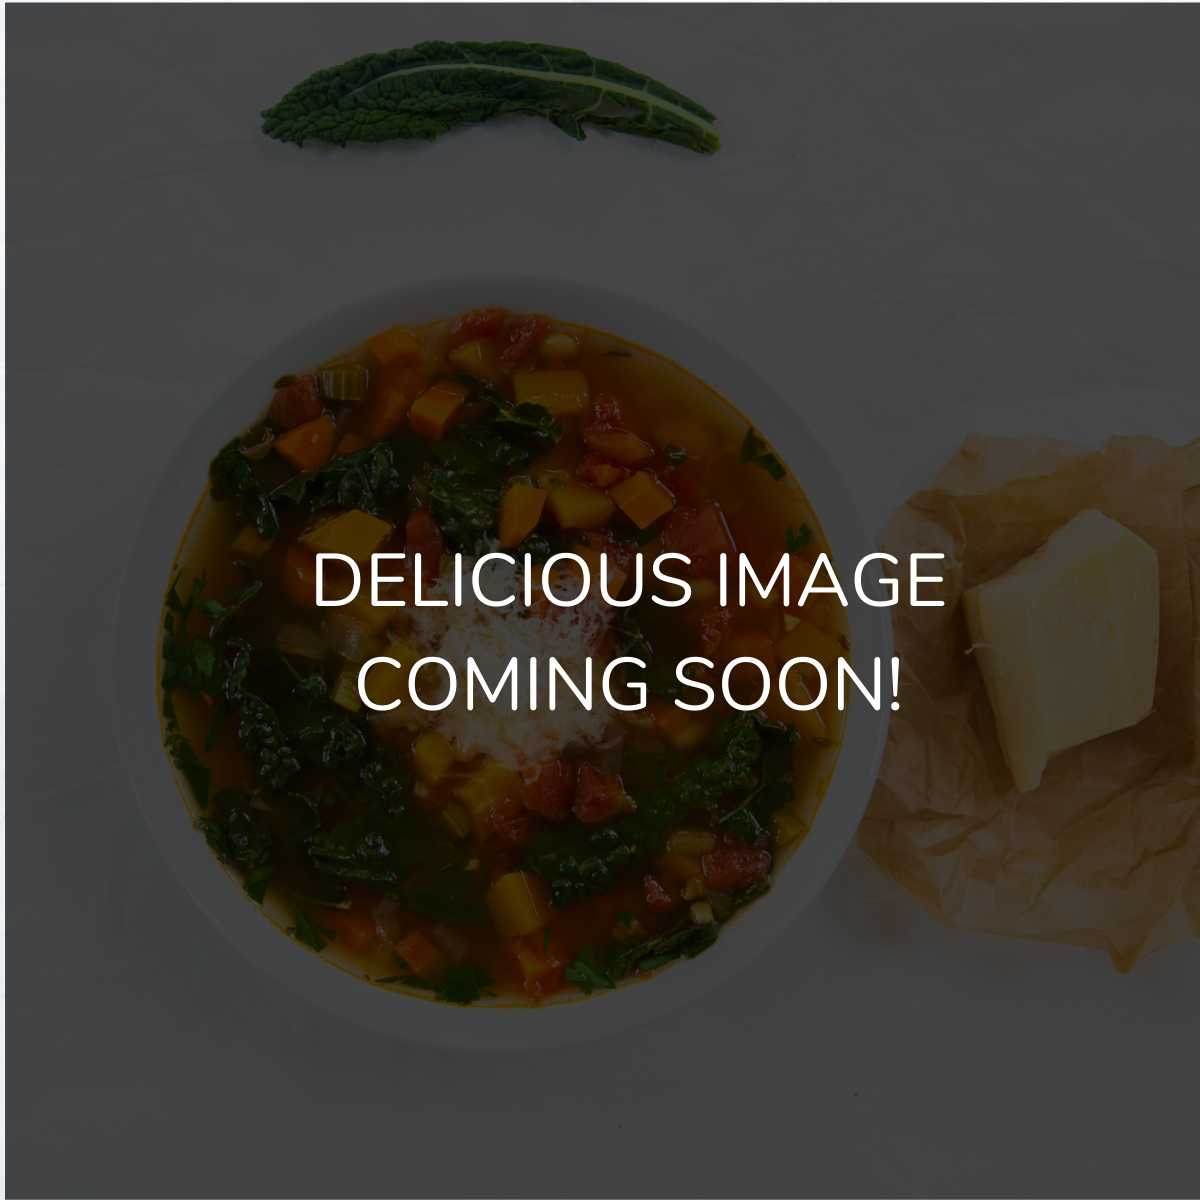 Delicious Image Coming Soon! (1)